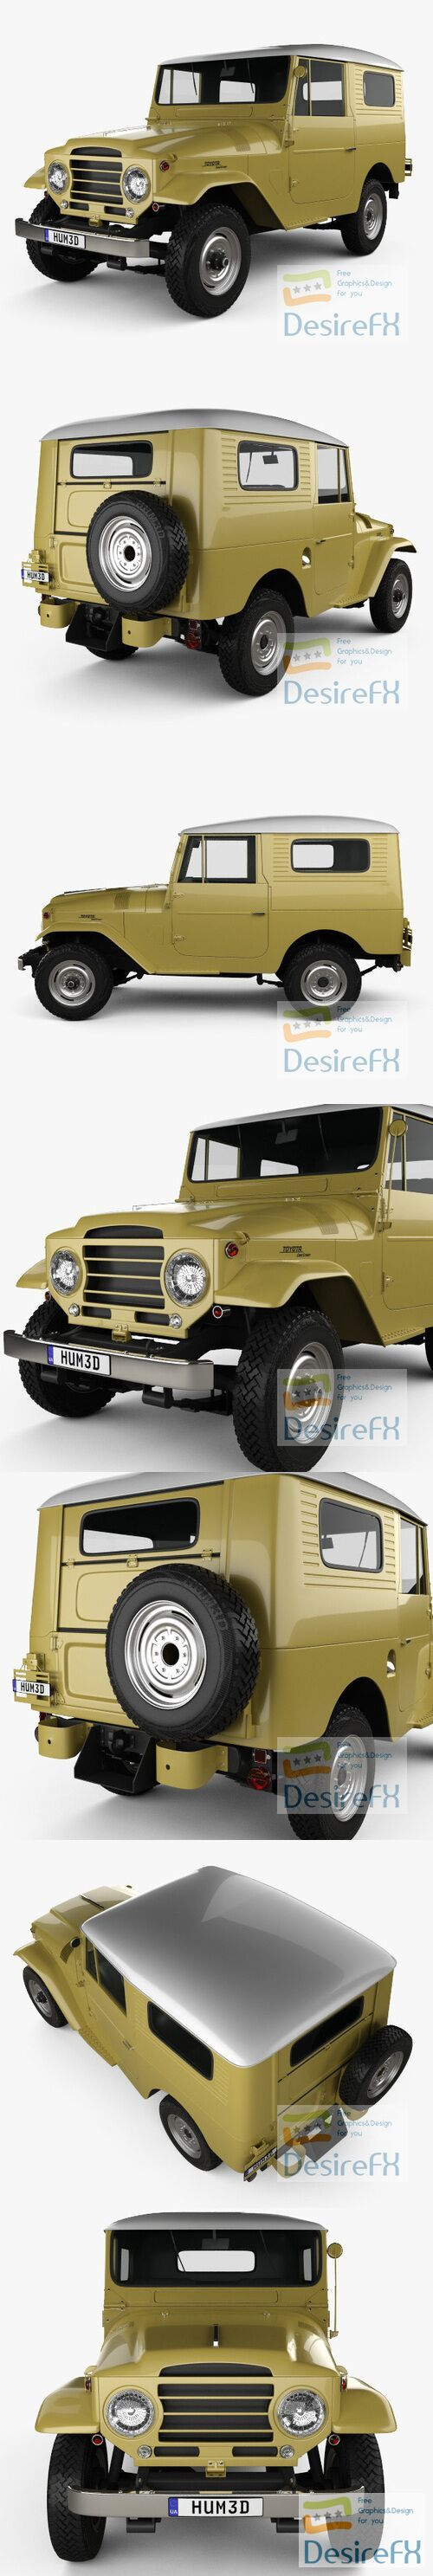 Toyota Land Cruiser hardtop 1955 3D Model